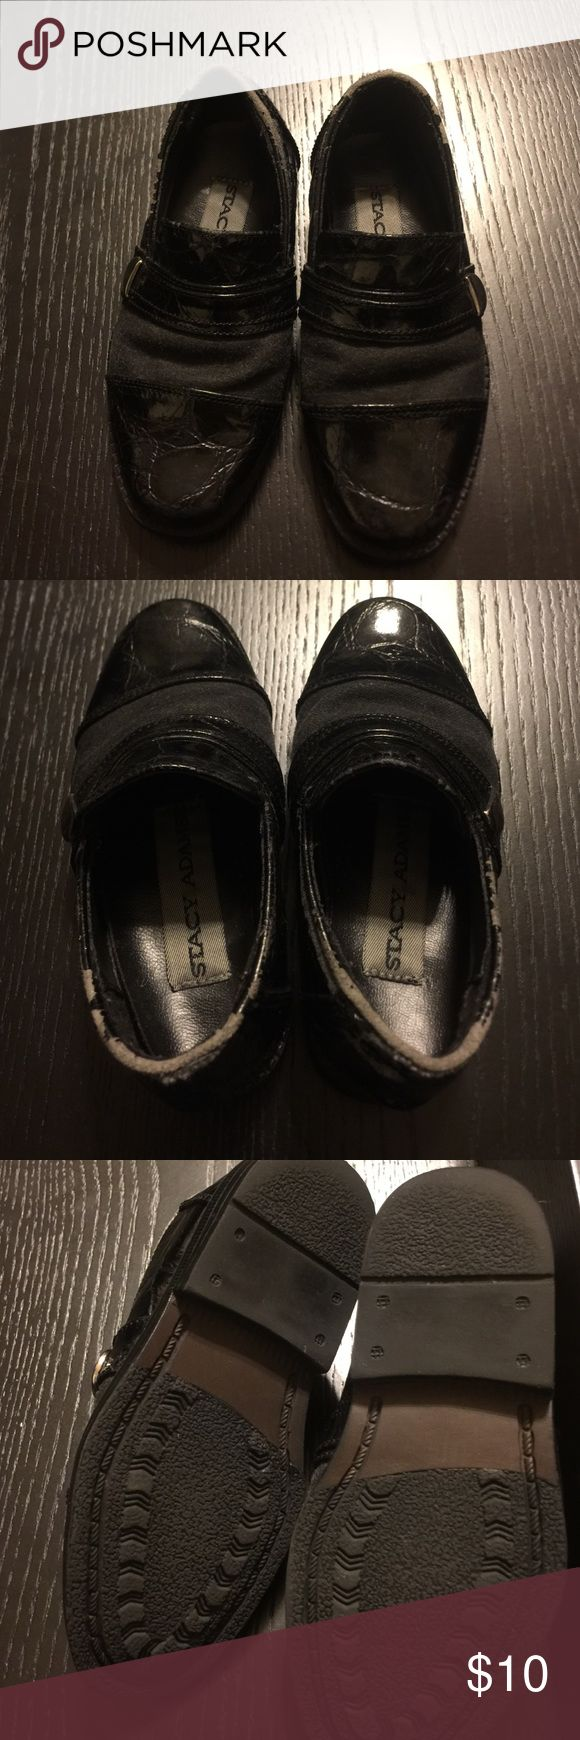 Stacy Adams boys dress shoe Classic Stacy Adams size 8 toddler Carmello show signs of wear Shoes Dress Shoes